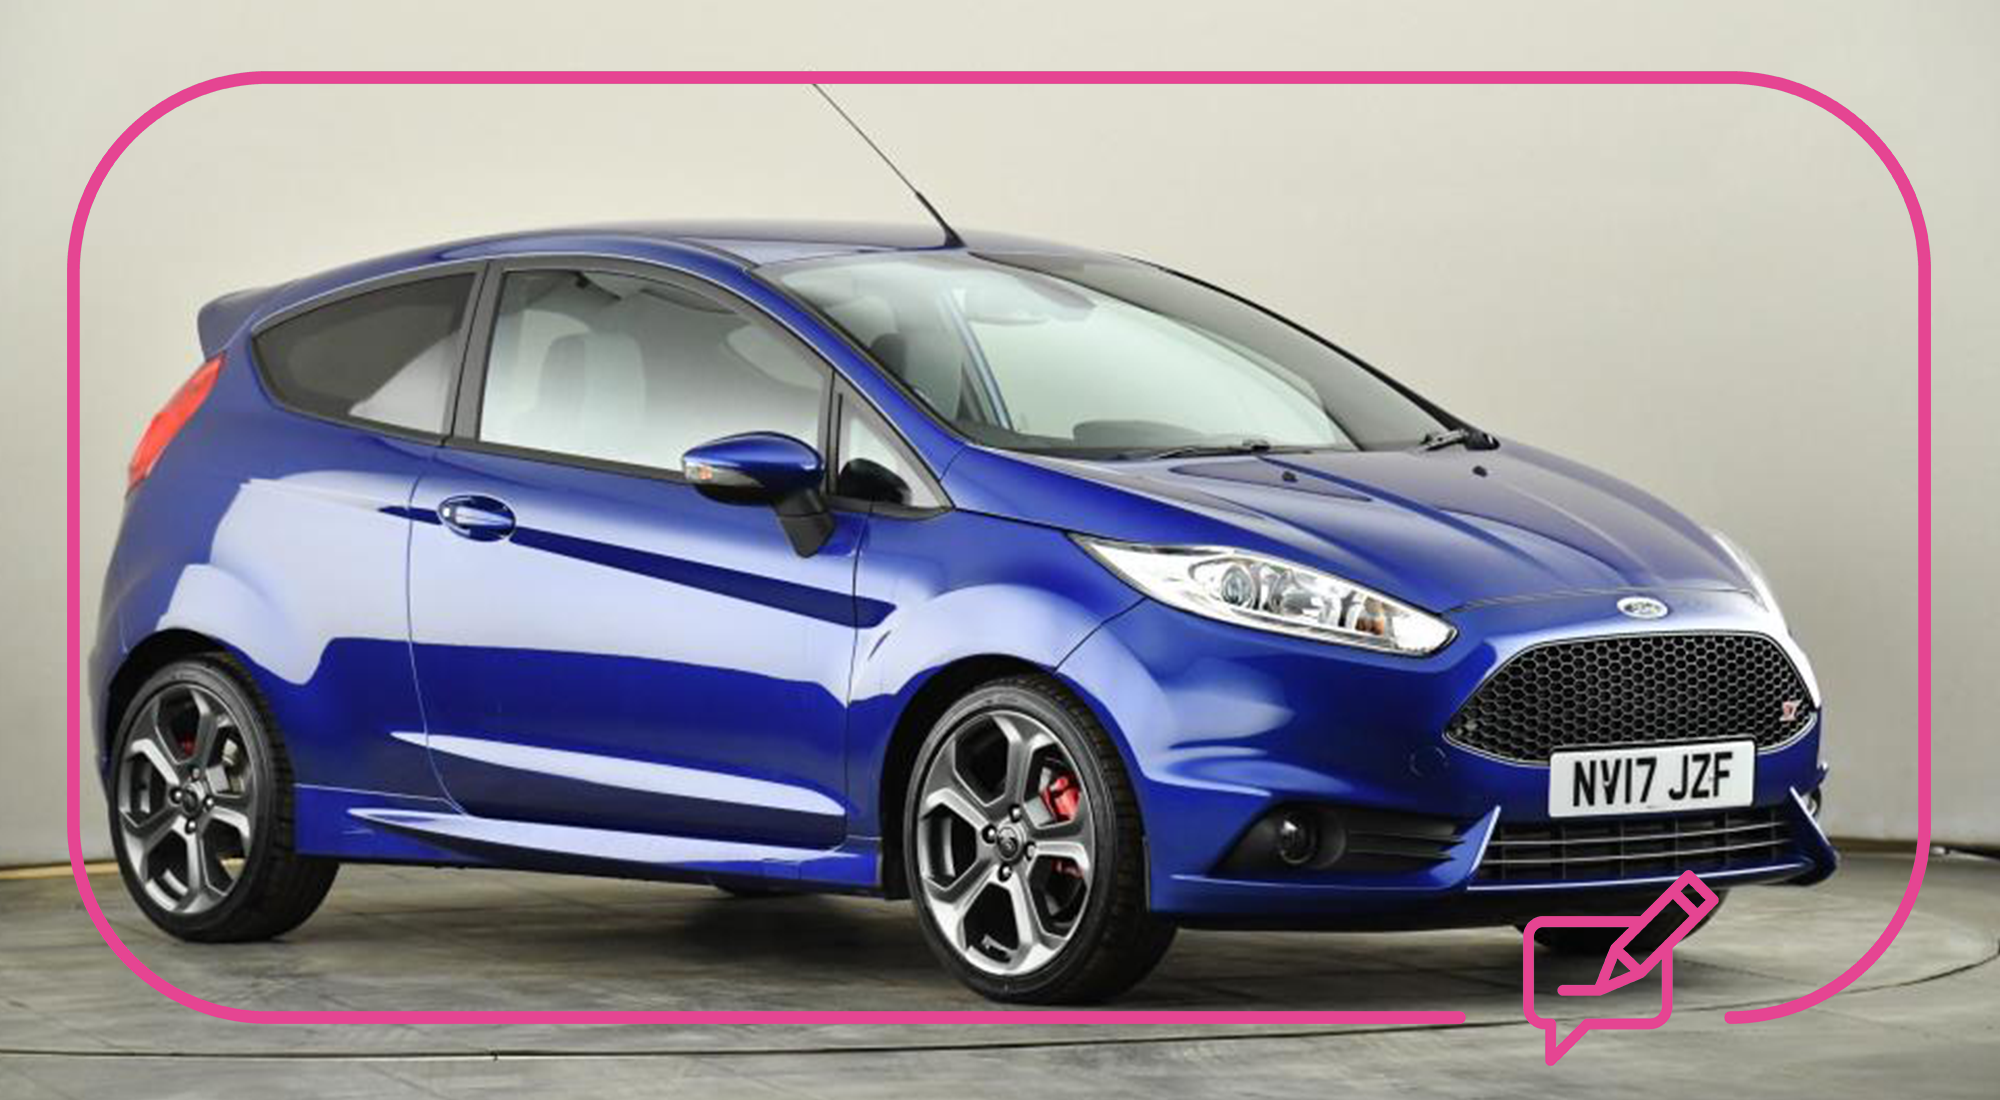 Ford Fiesta St St 2 And St 3 What S The Difference